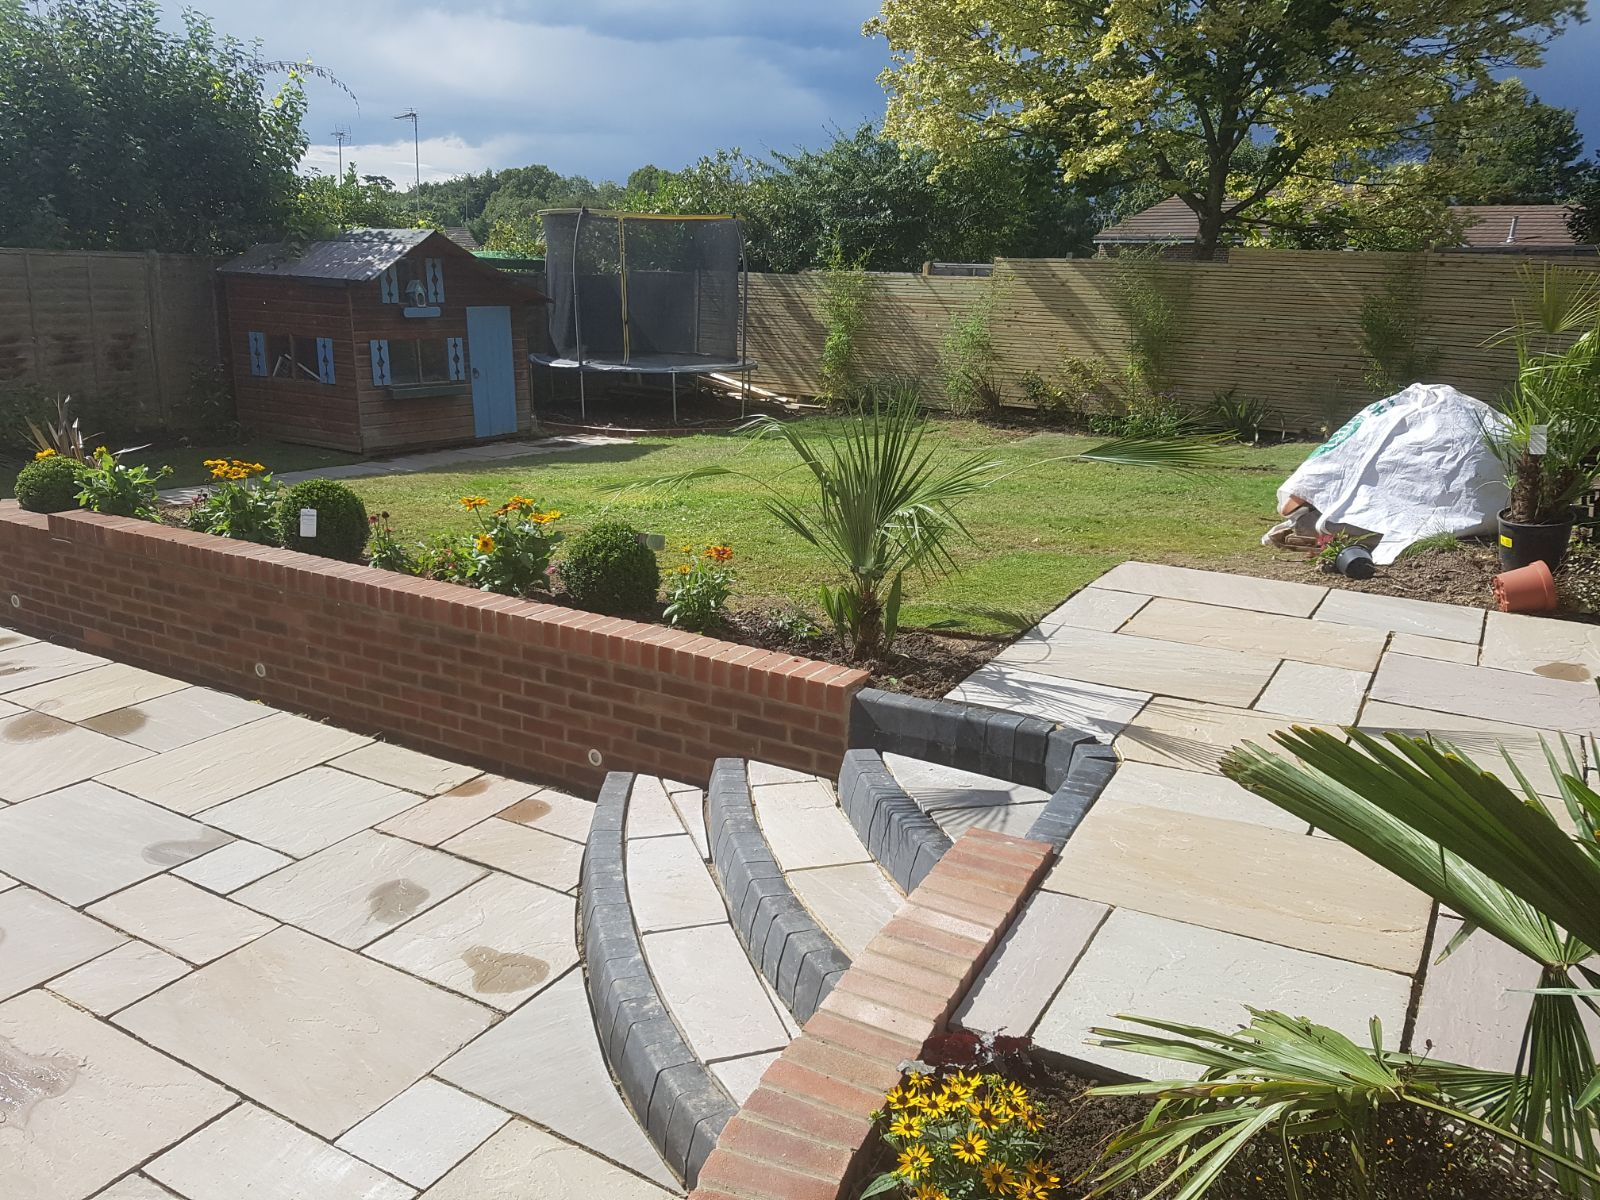 Patio with corner steps garden design in horsham area